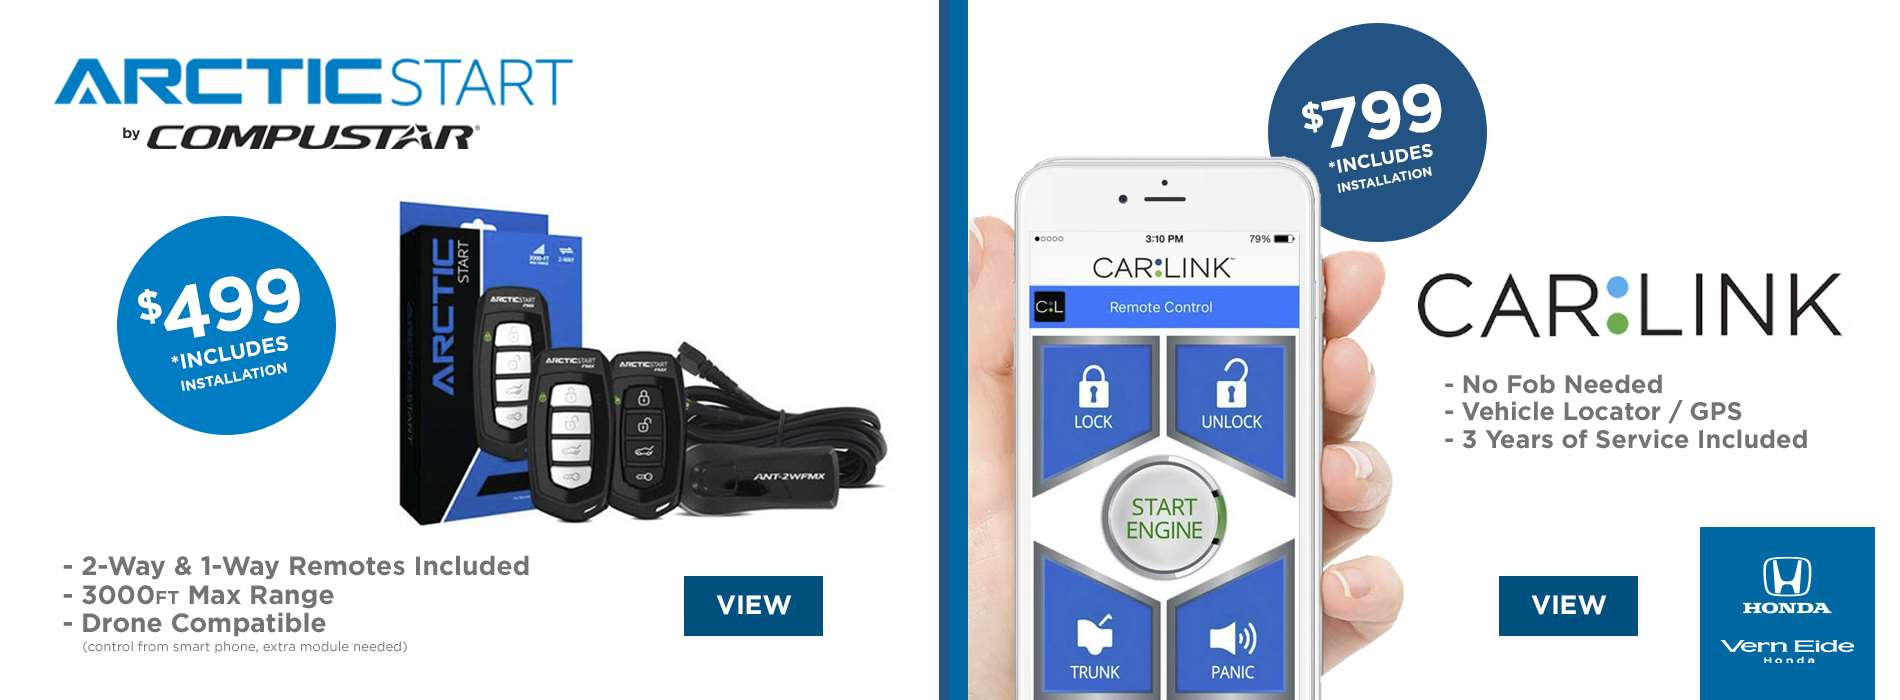 Remote Starts - Arctic Start & Carlink